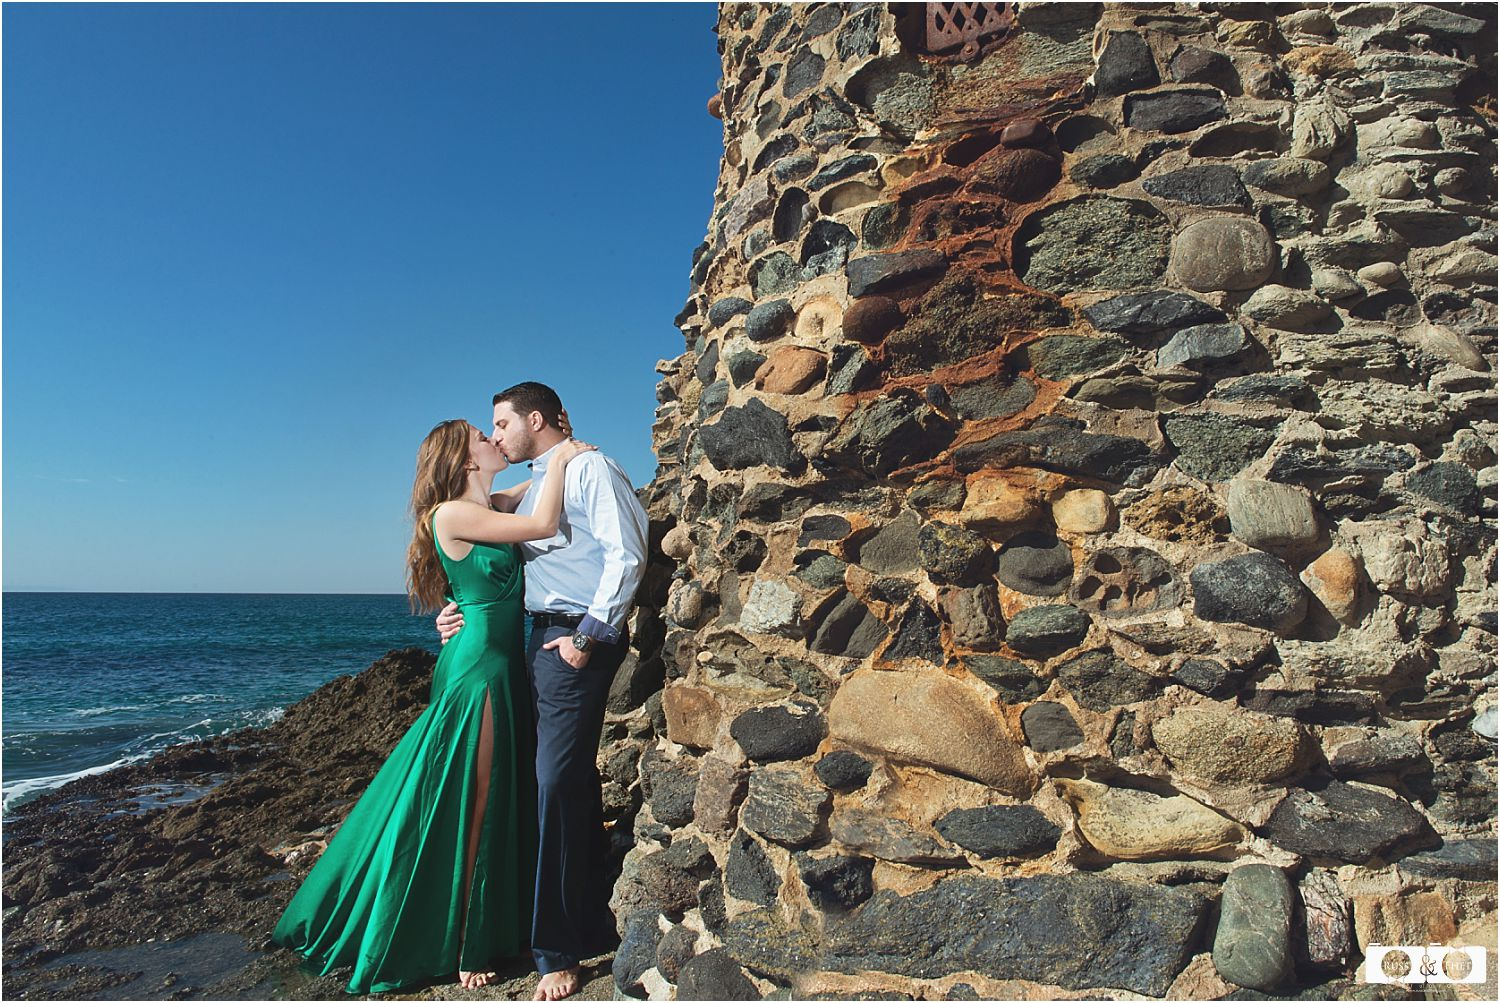 Victoria-Beach-Orange-County-Engagement-Session (7).jpg